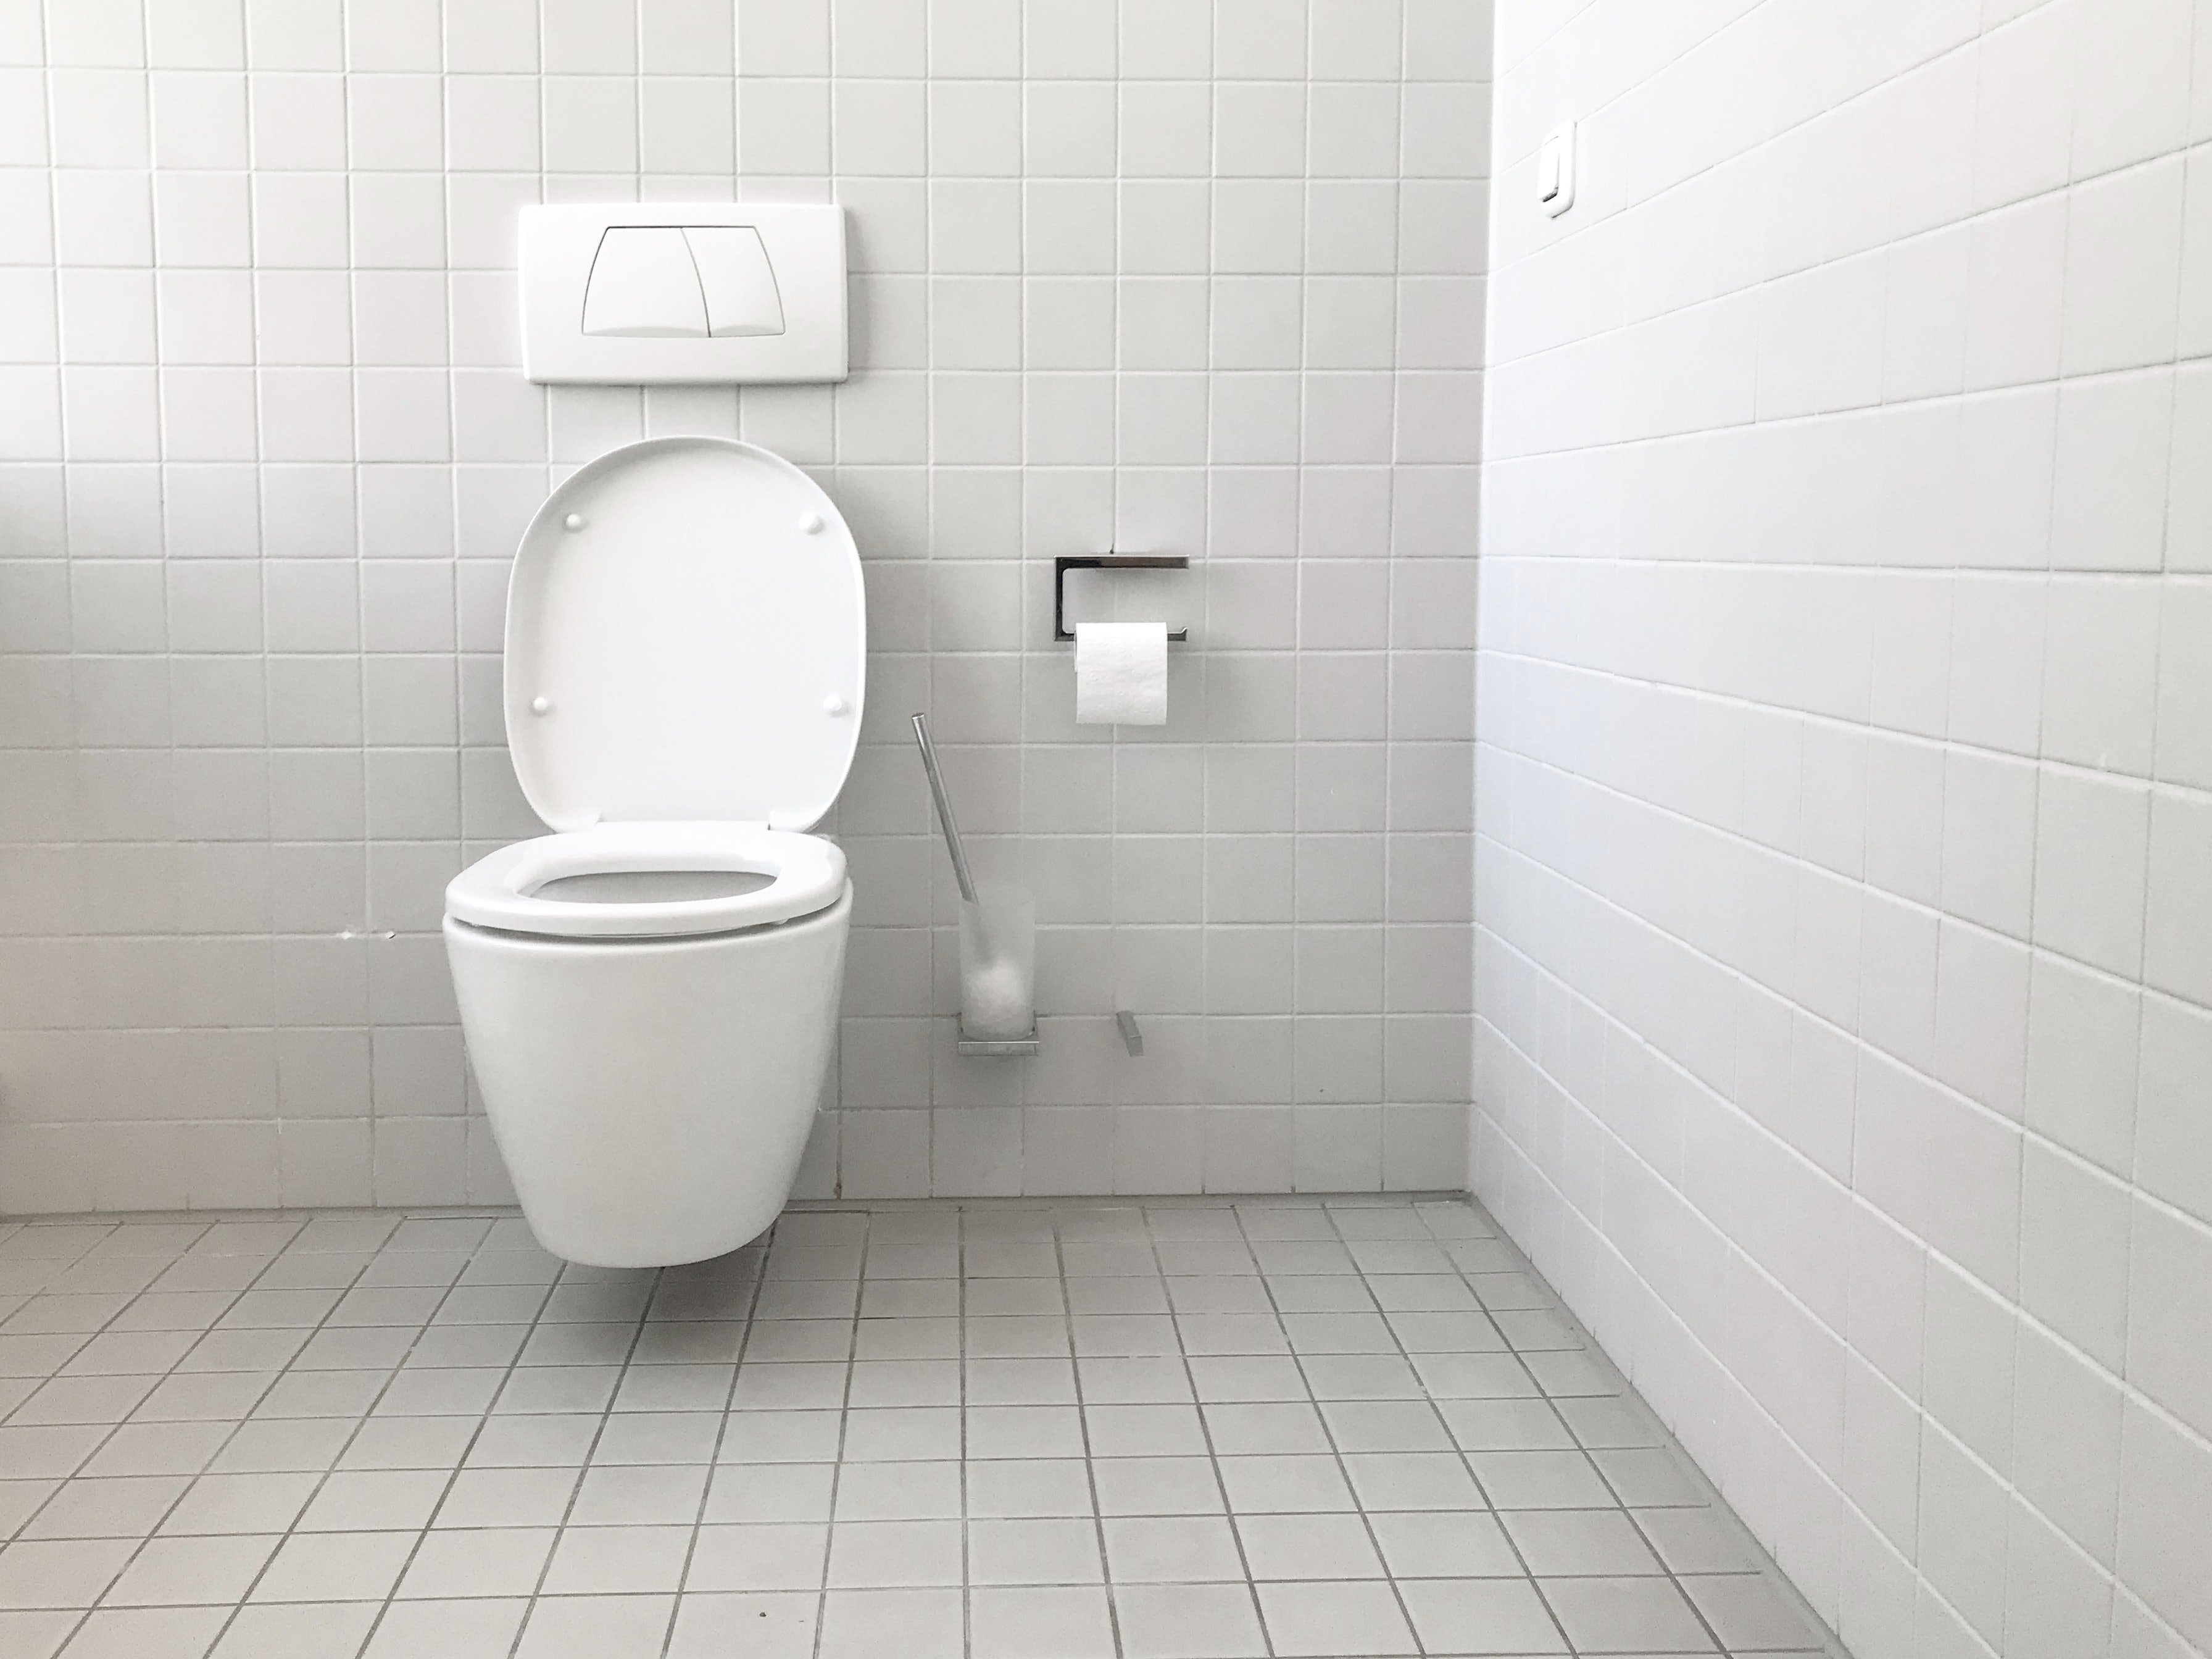 Keeping the Toilet Bowl Clean and Ring-Free's featured image